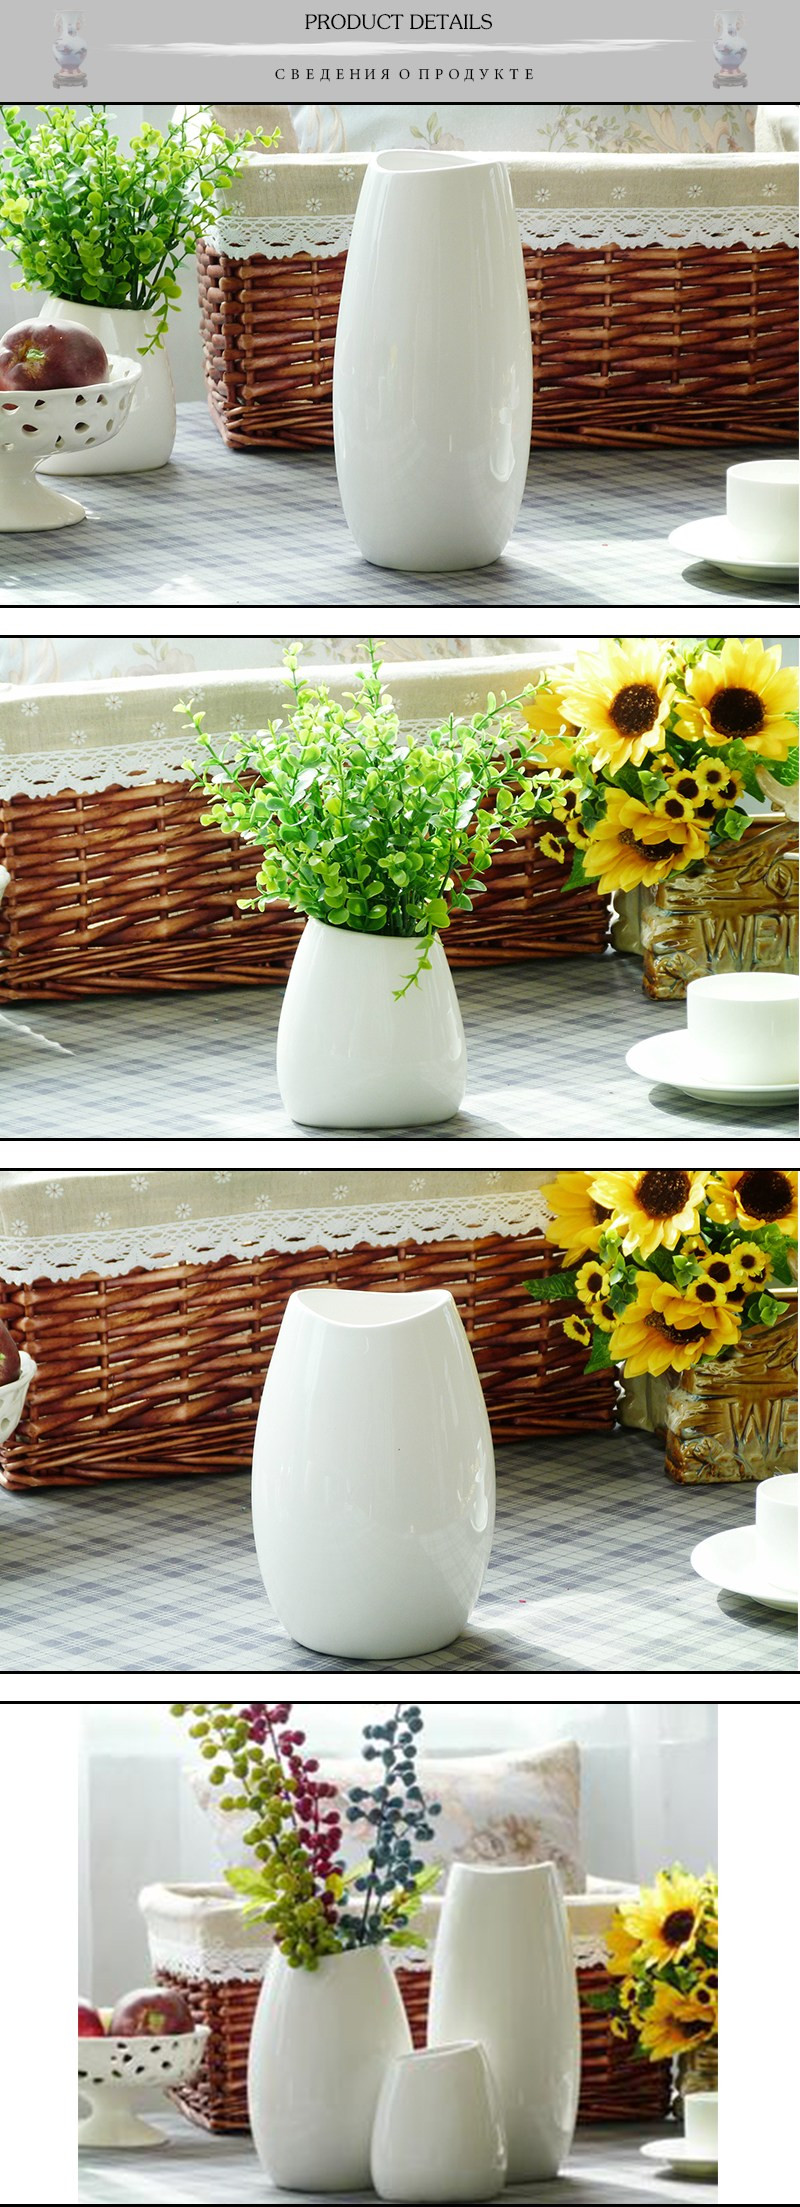 bamboo plant with elephant vase of a‰§classic crafts white porcelain vase modern desktop small vase regarding classic crafts white porcelain vase modern desktop small vase creative home decoration gifts ulknn